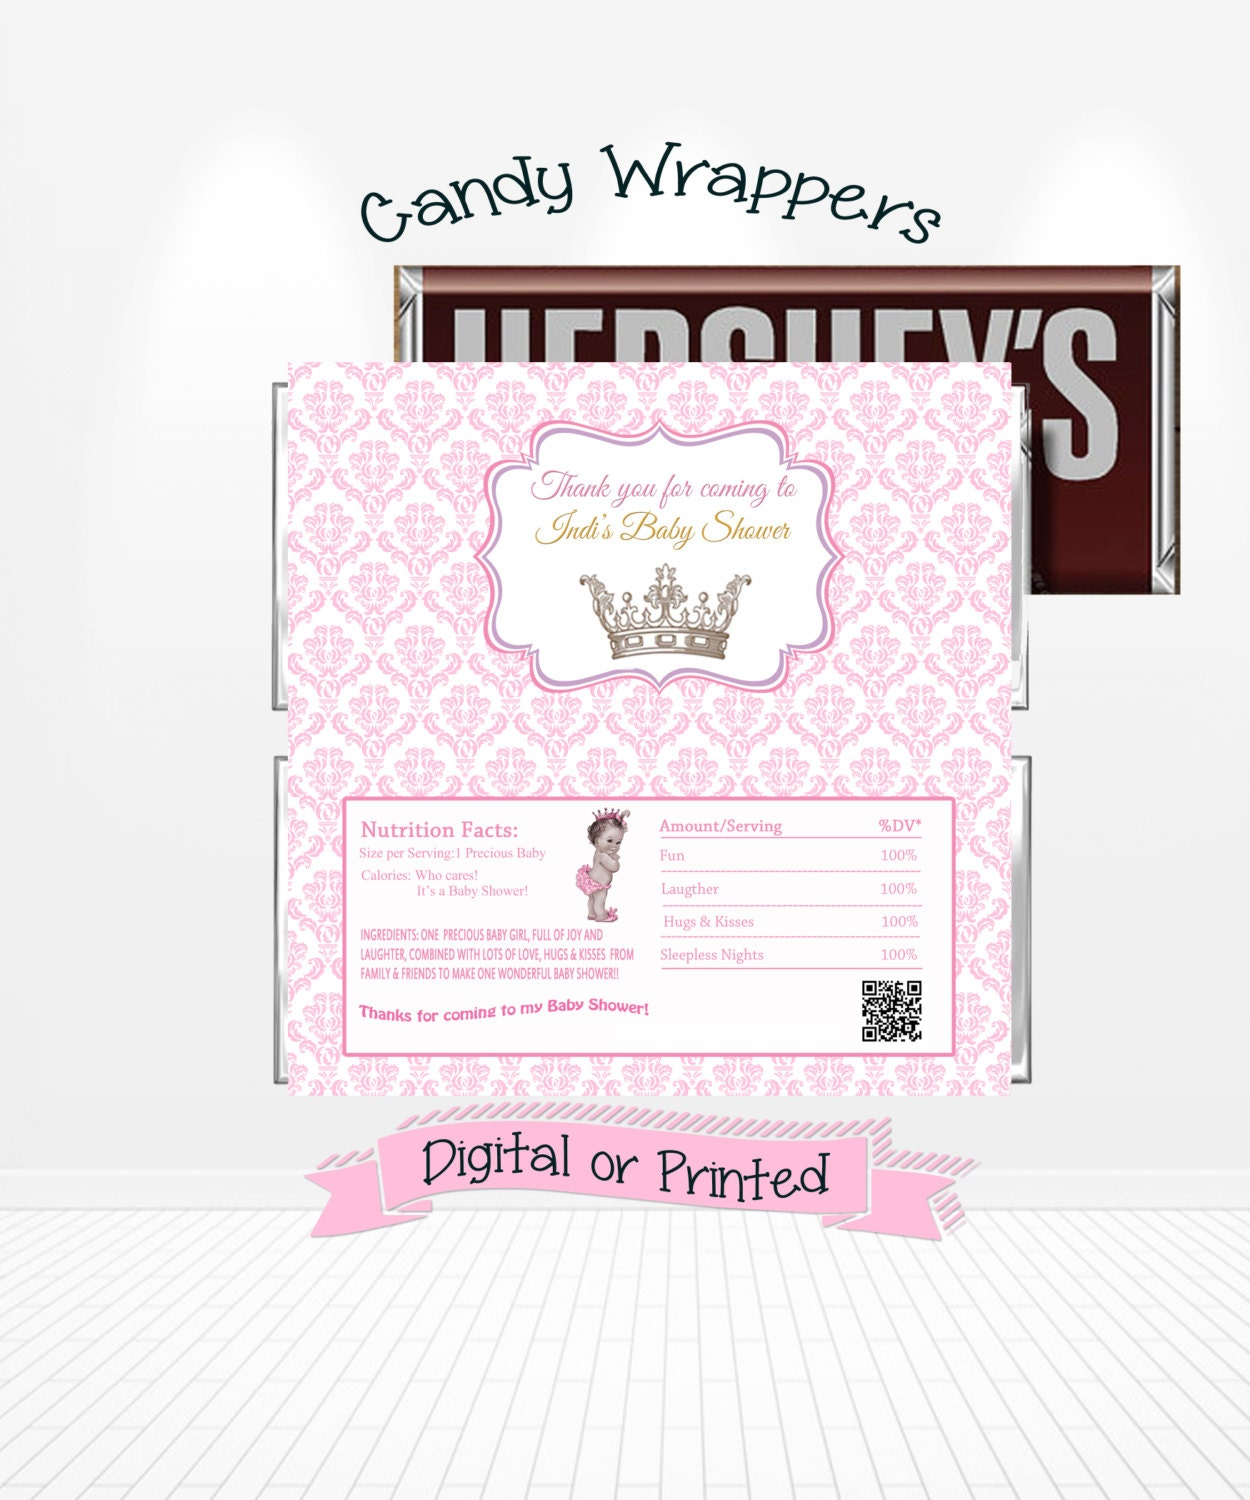 candy bar wrappers template for baby shower printable free - free template for candy bar wrappers 7 best images of